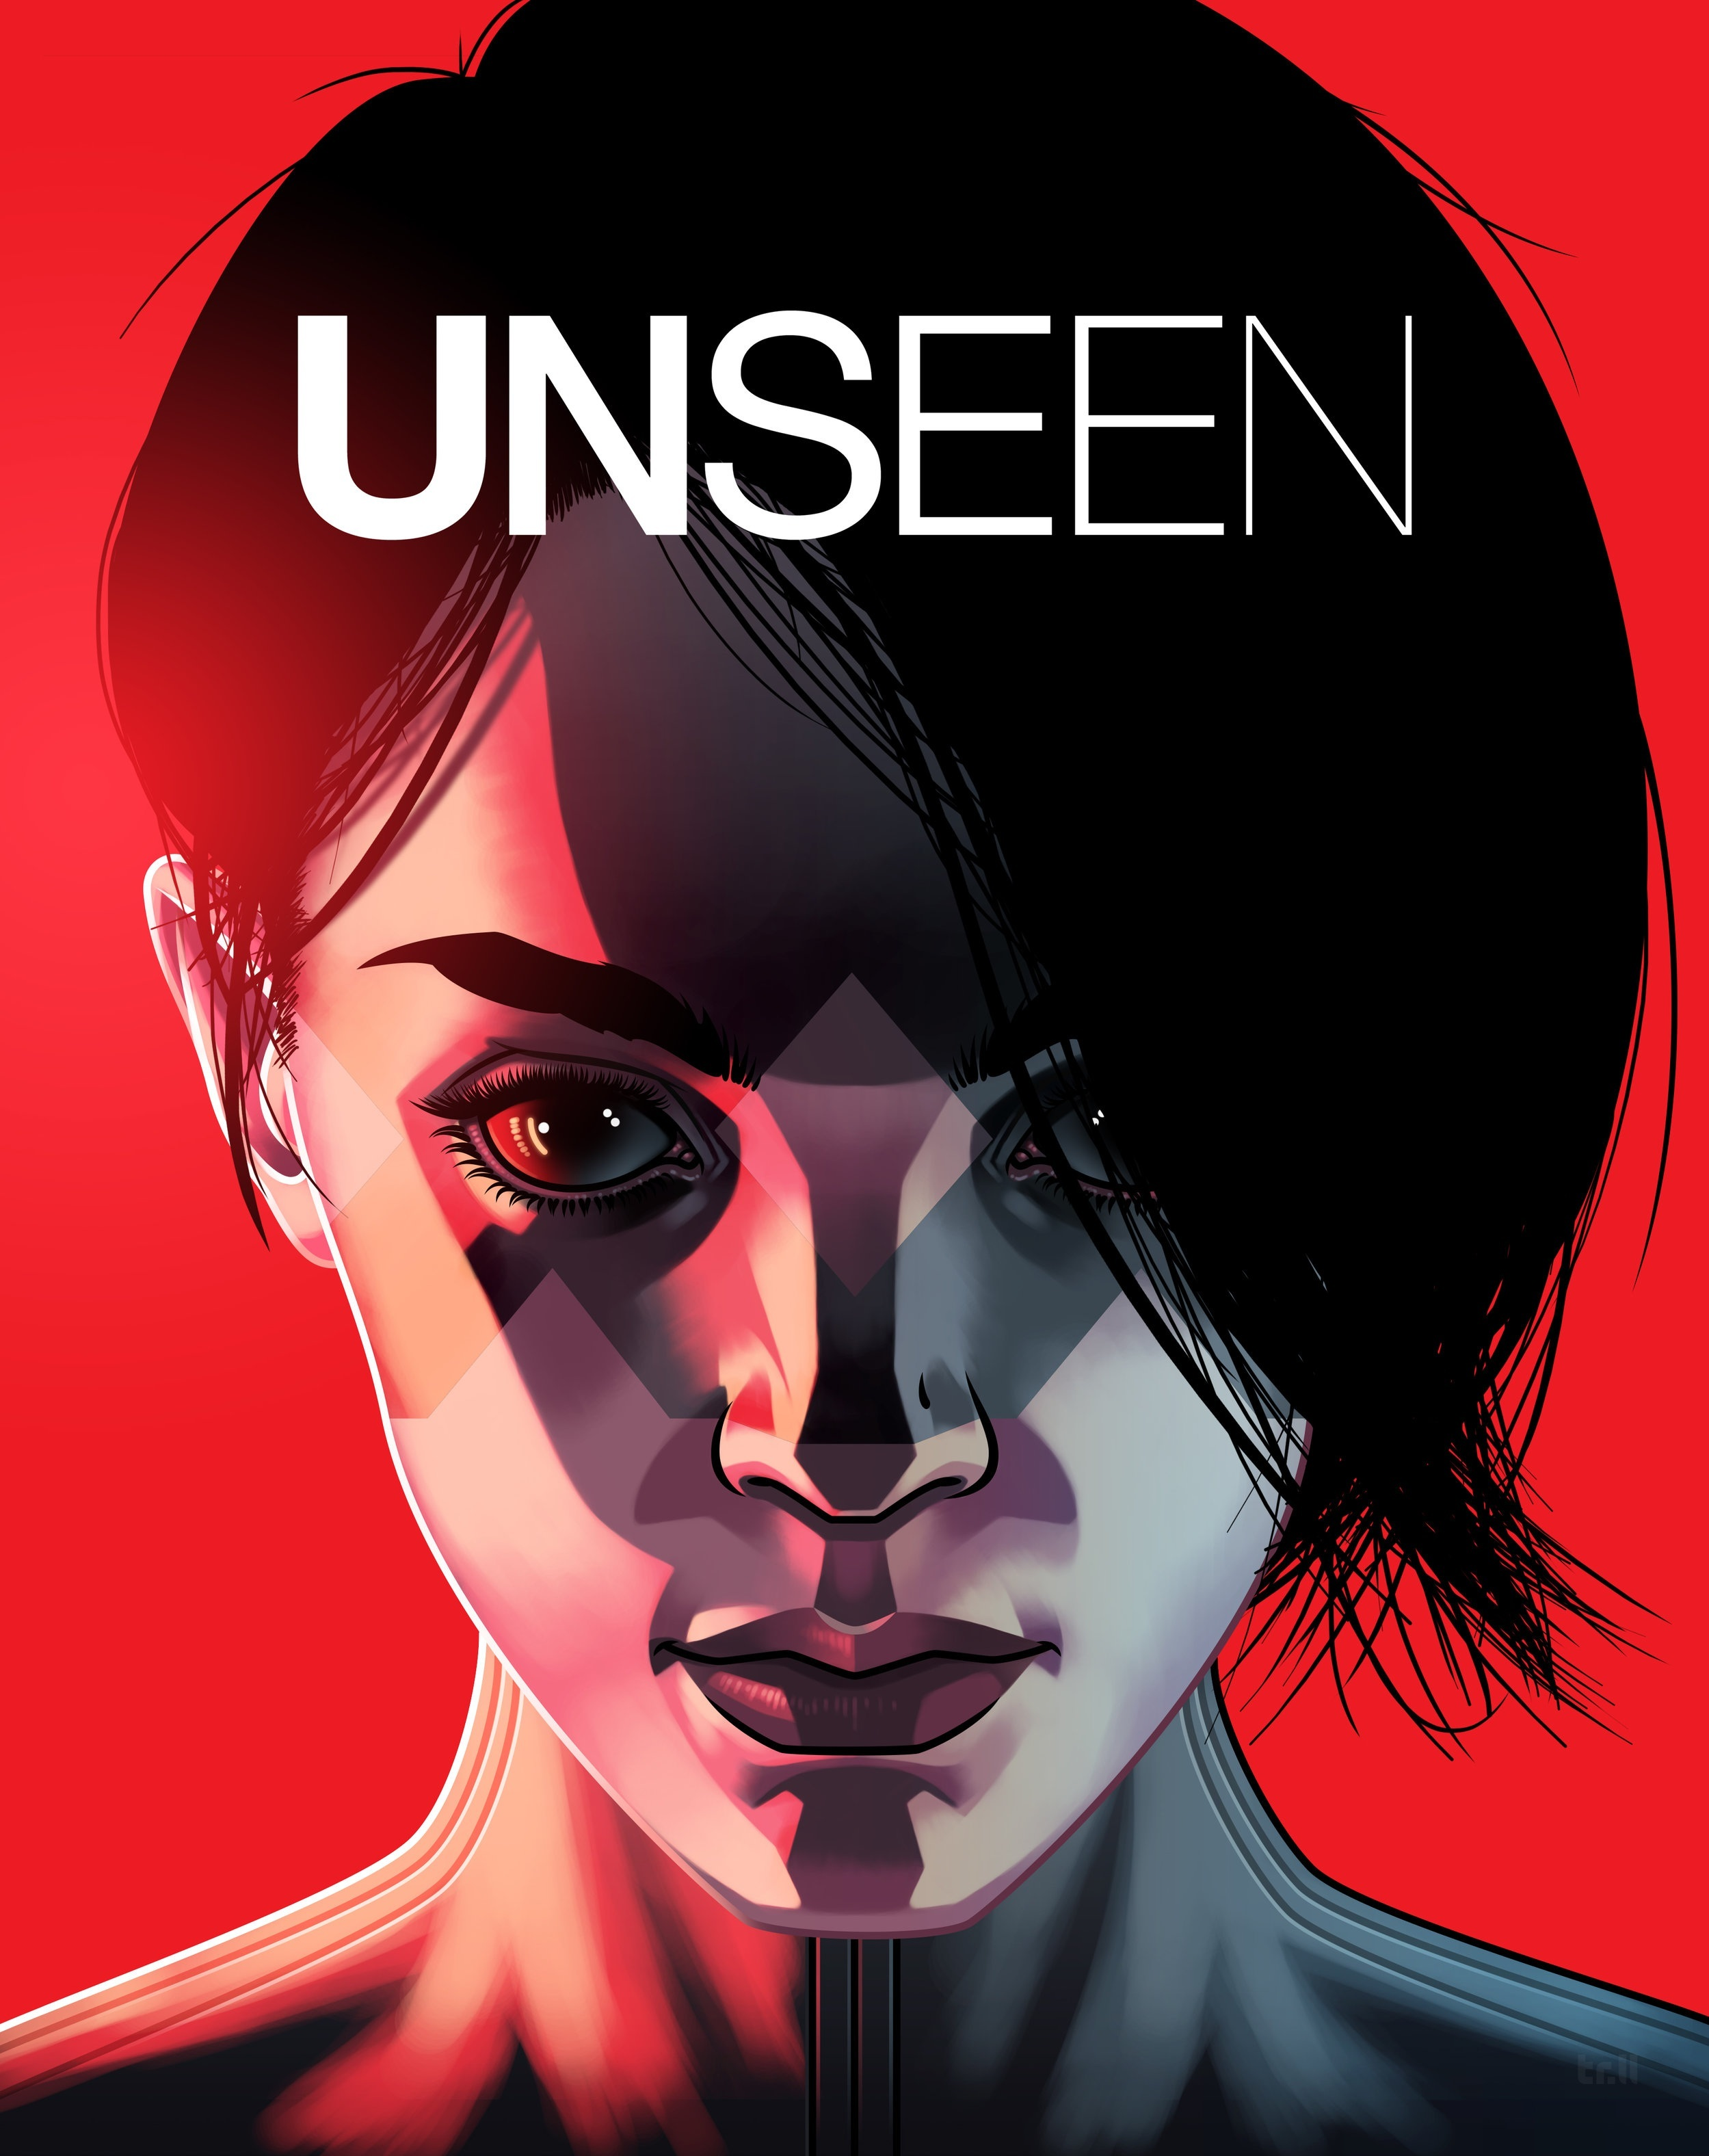 Cover: The word unseen in bold letters, slowly fading as the word ends. A women's face: young, confident, focused. Her dark hair is swept to the side covering one eye. Underneath is a mask extending down her face forming two X's over her eyes which are black as Obsidian. This is Afsana, the heroine of Unseen.